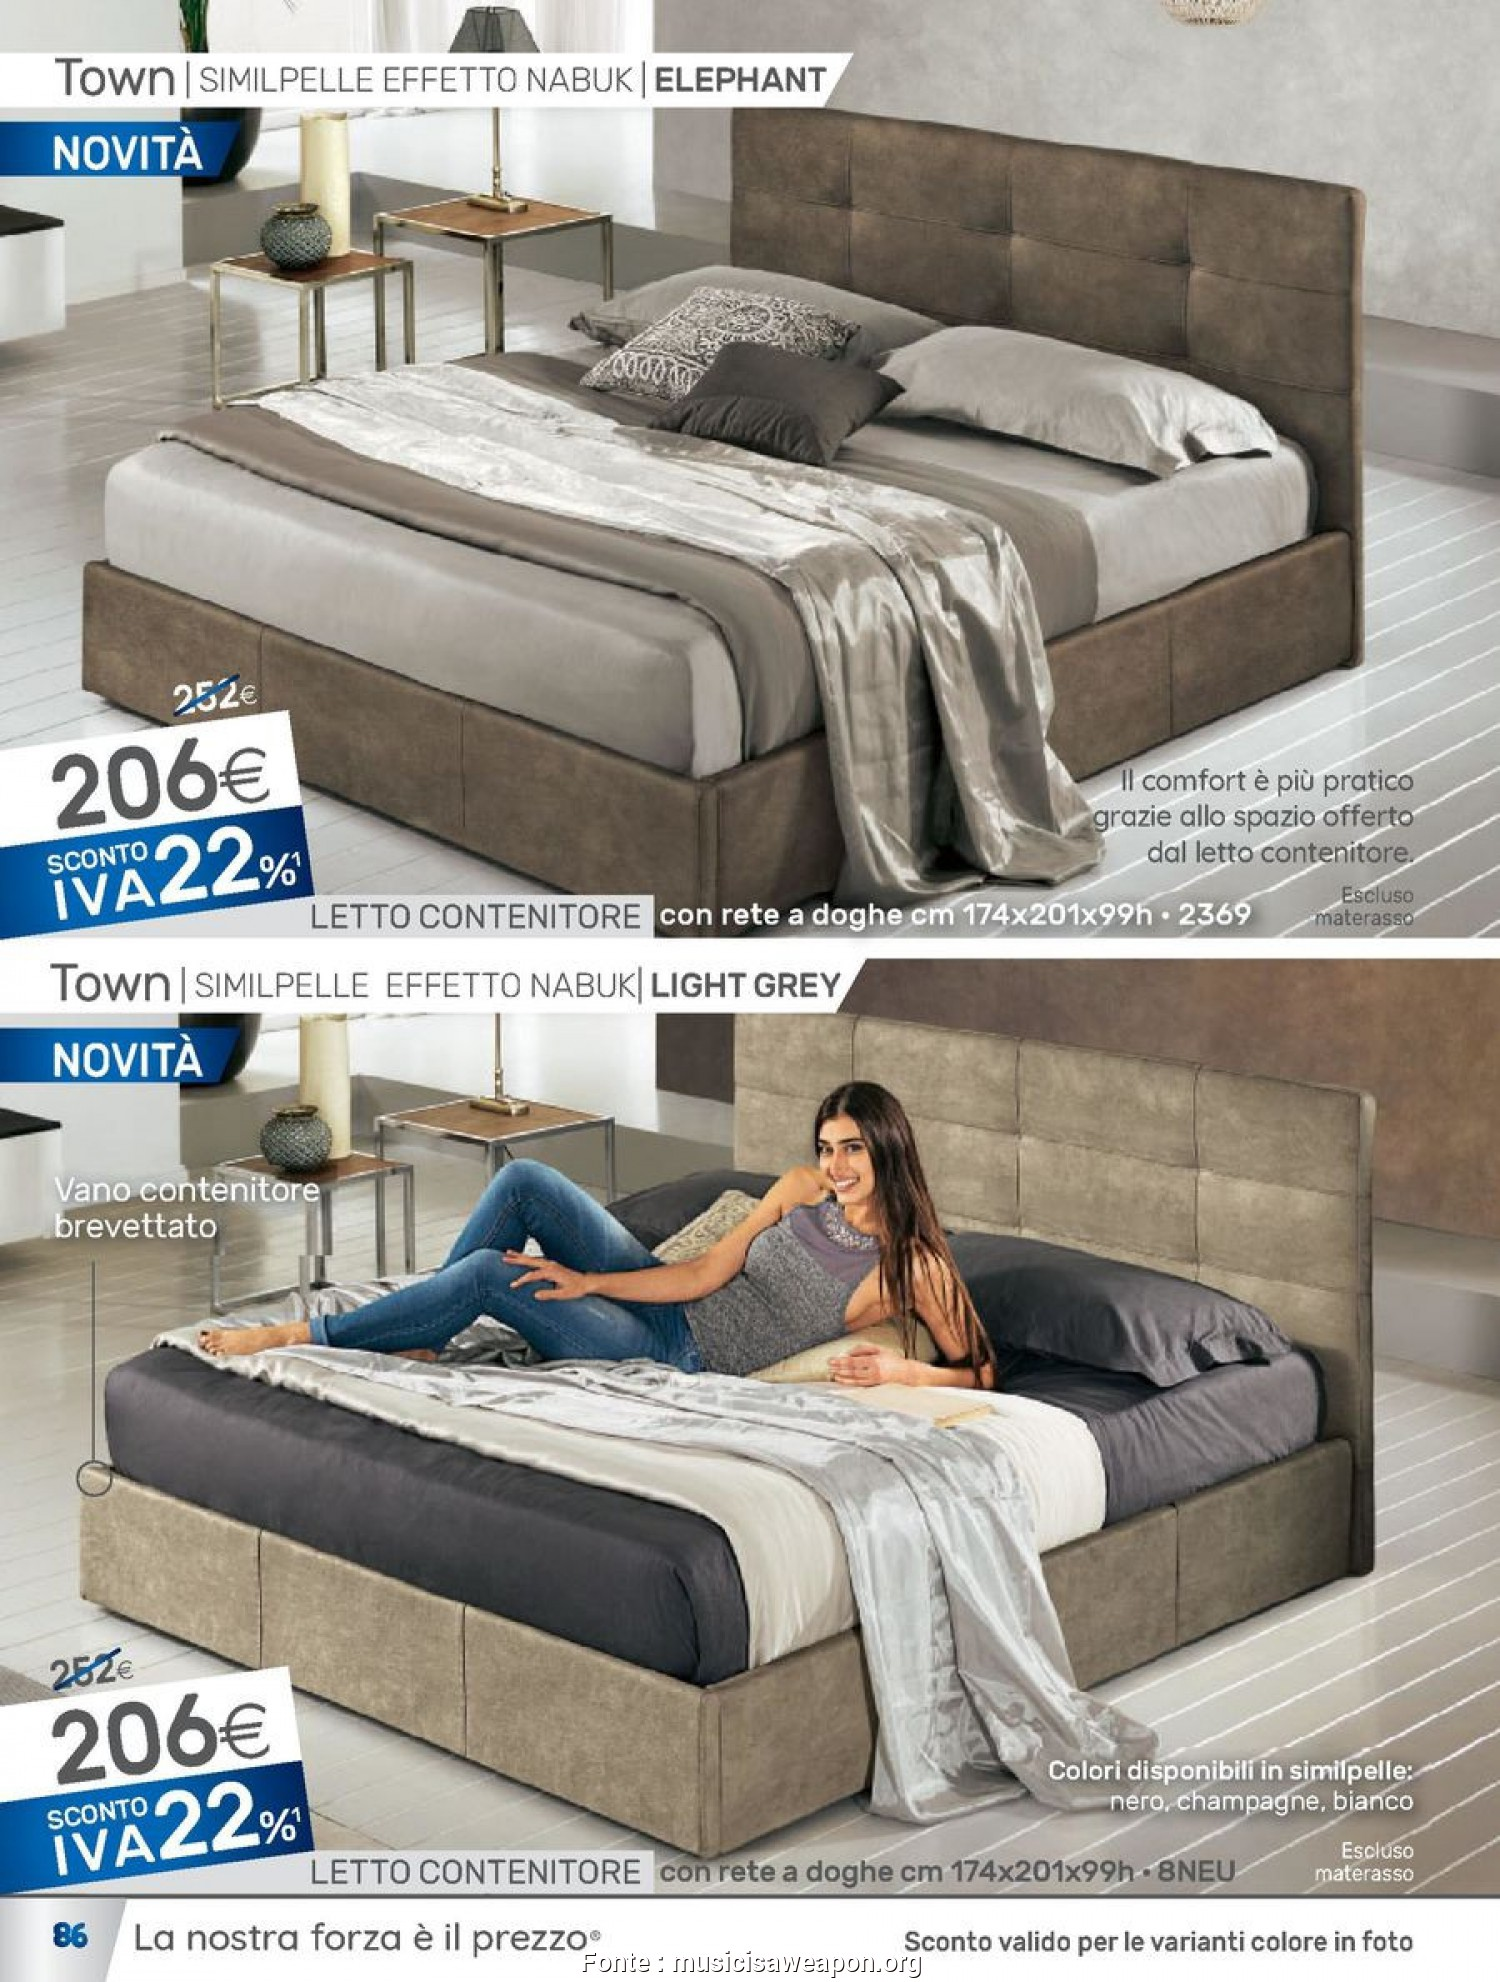 Costoso 5 Reti, Letto Singolo Mondo Convenienza - Keever For ...